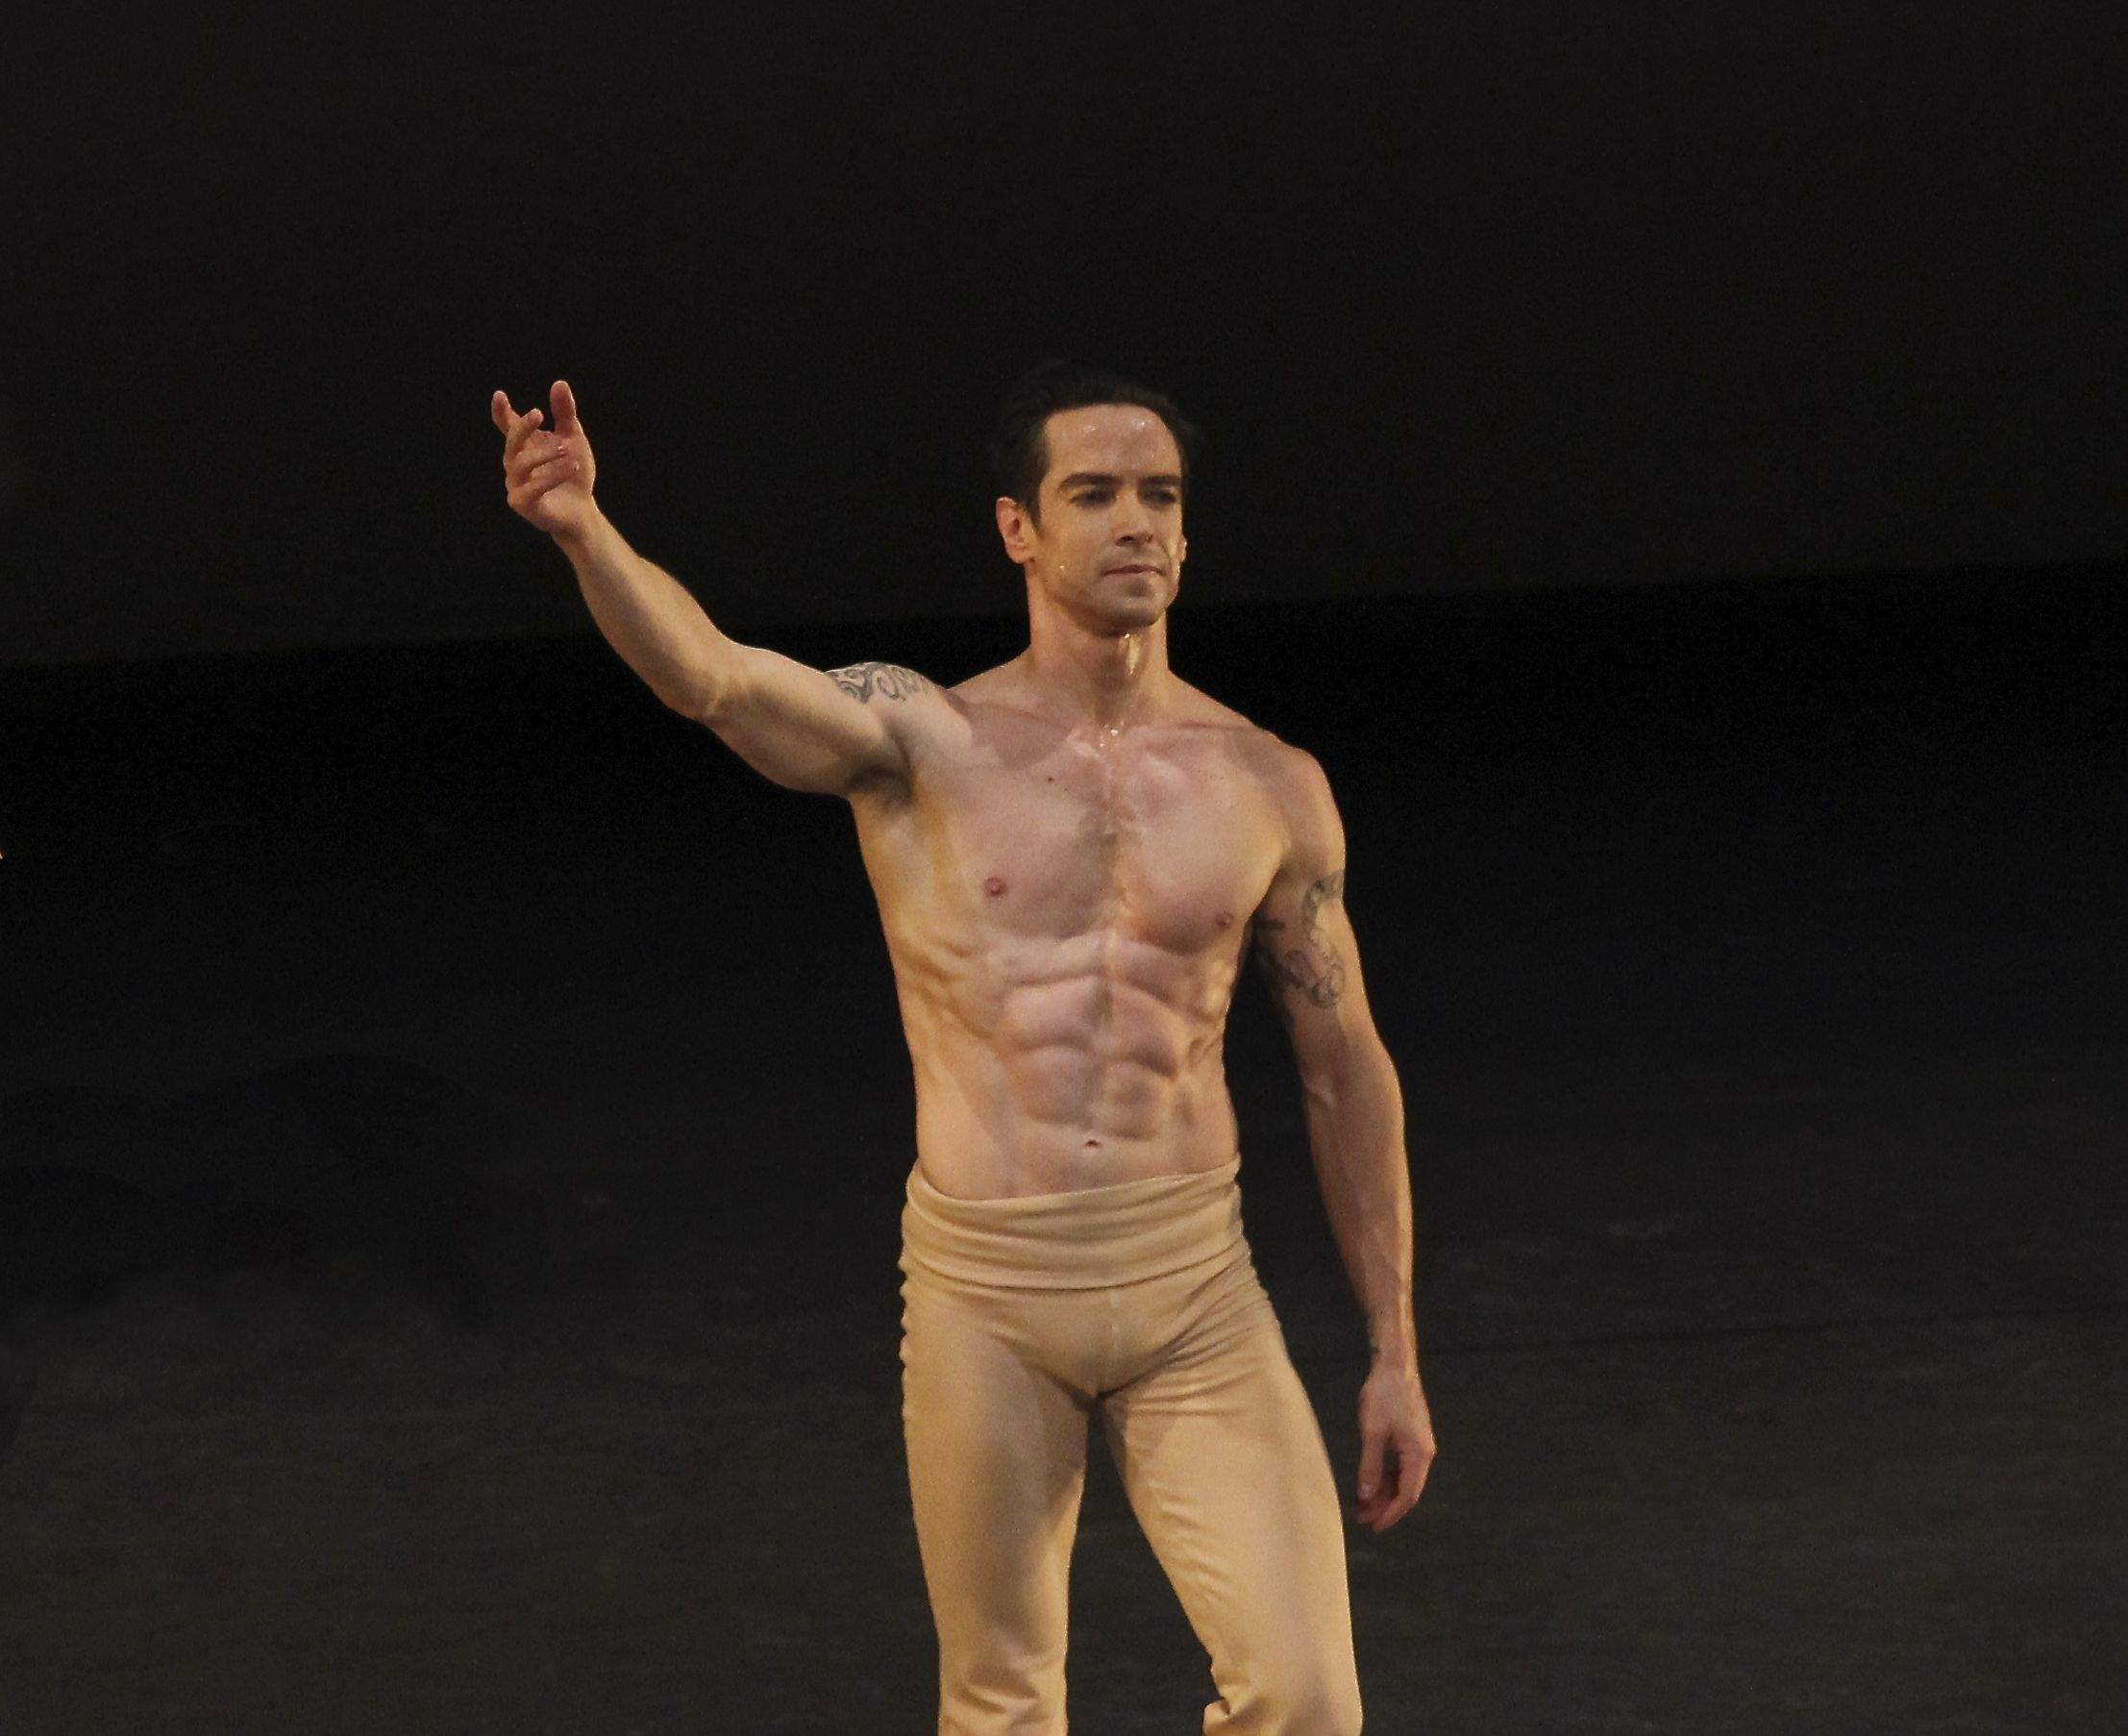 sascha radetsky height